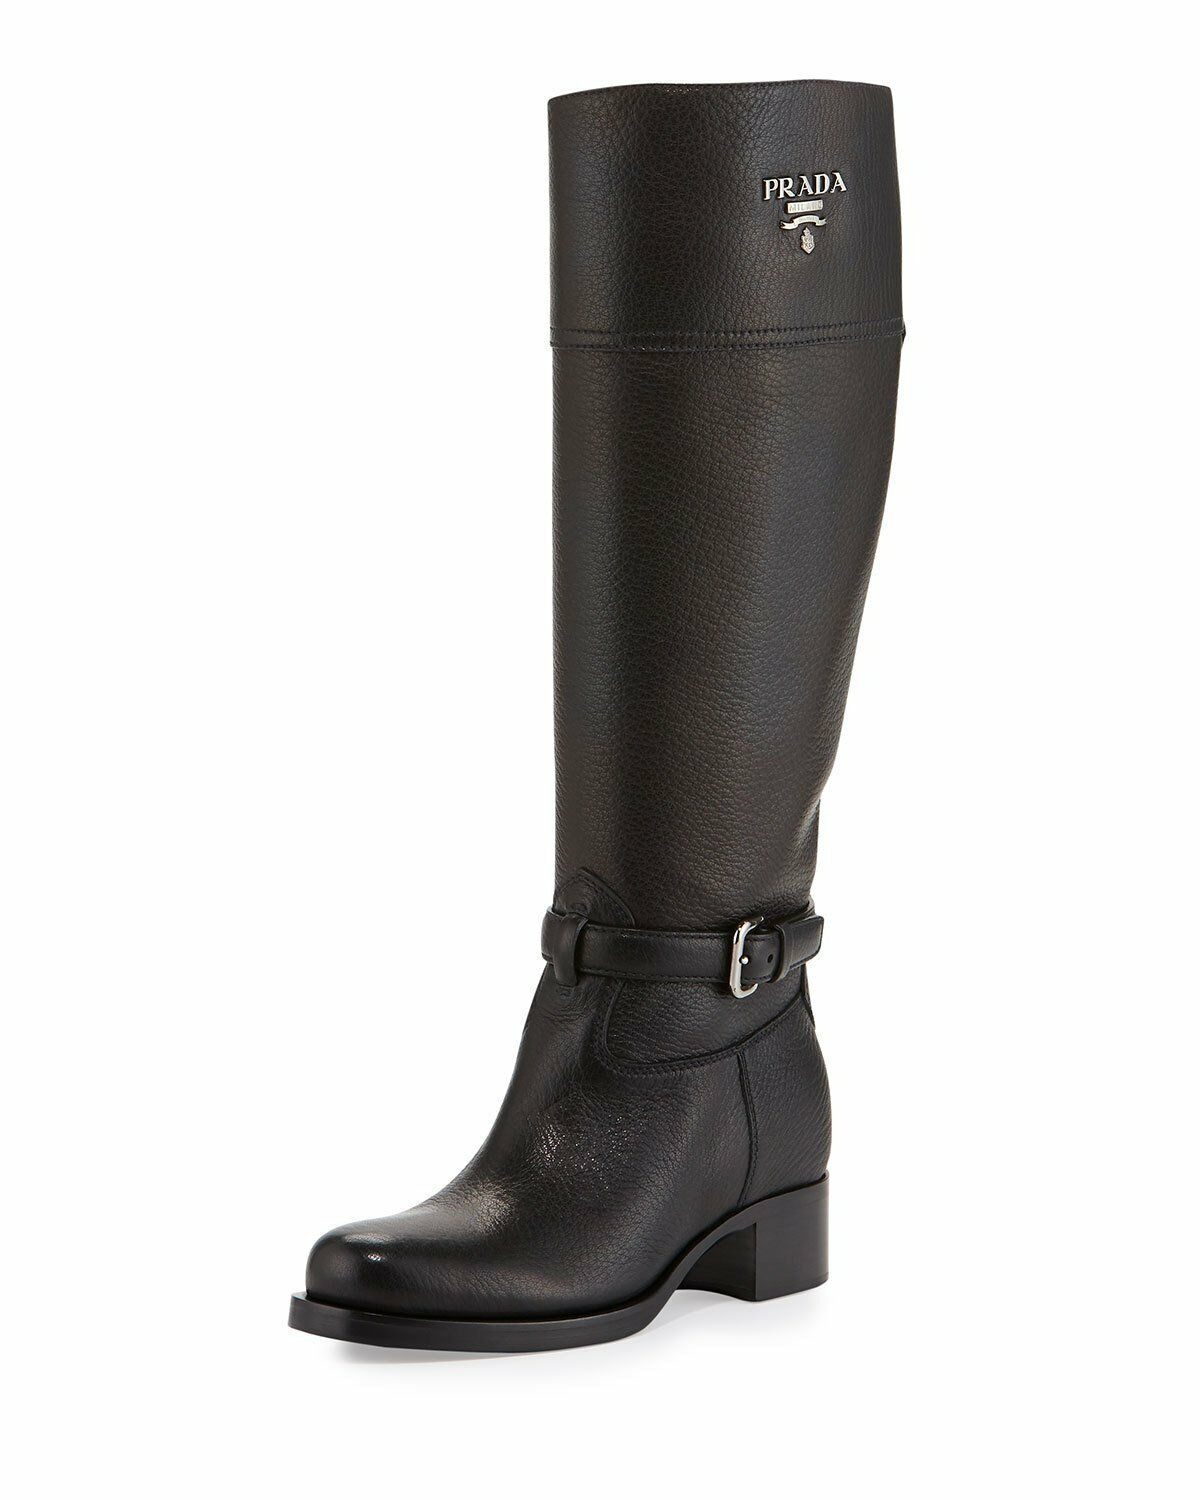 Prada Knee-High Riding Boots cheap with mastercard buy cheap supply free shipping pick a best new arrival cheap online B13I4tCE